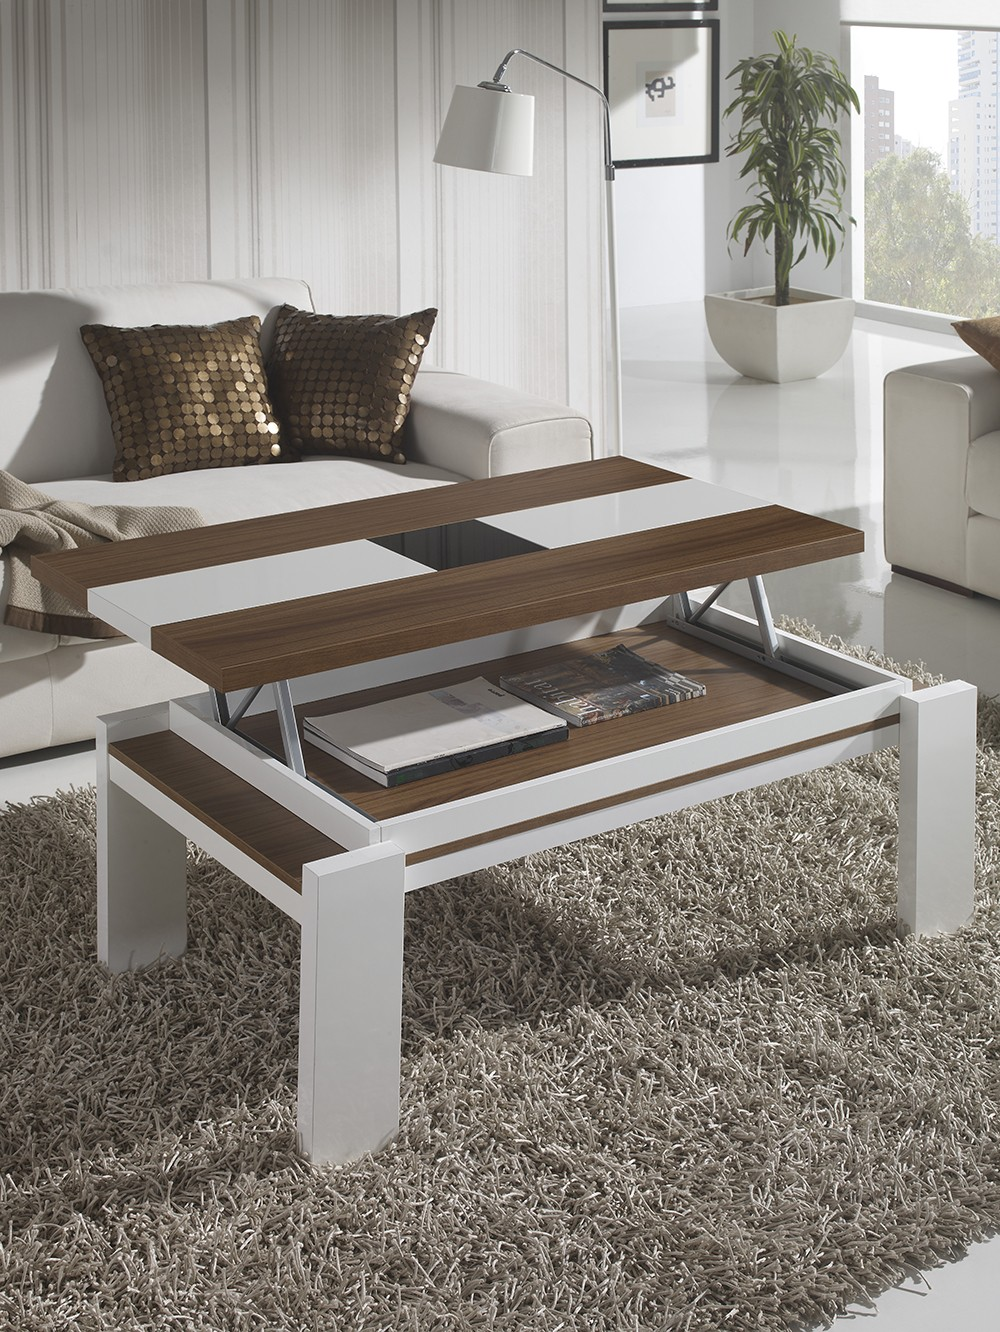 Table basse qui leve - Mecanisme pour table basse relevable ...